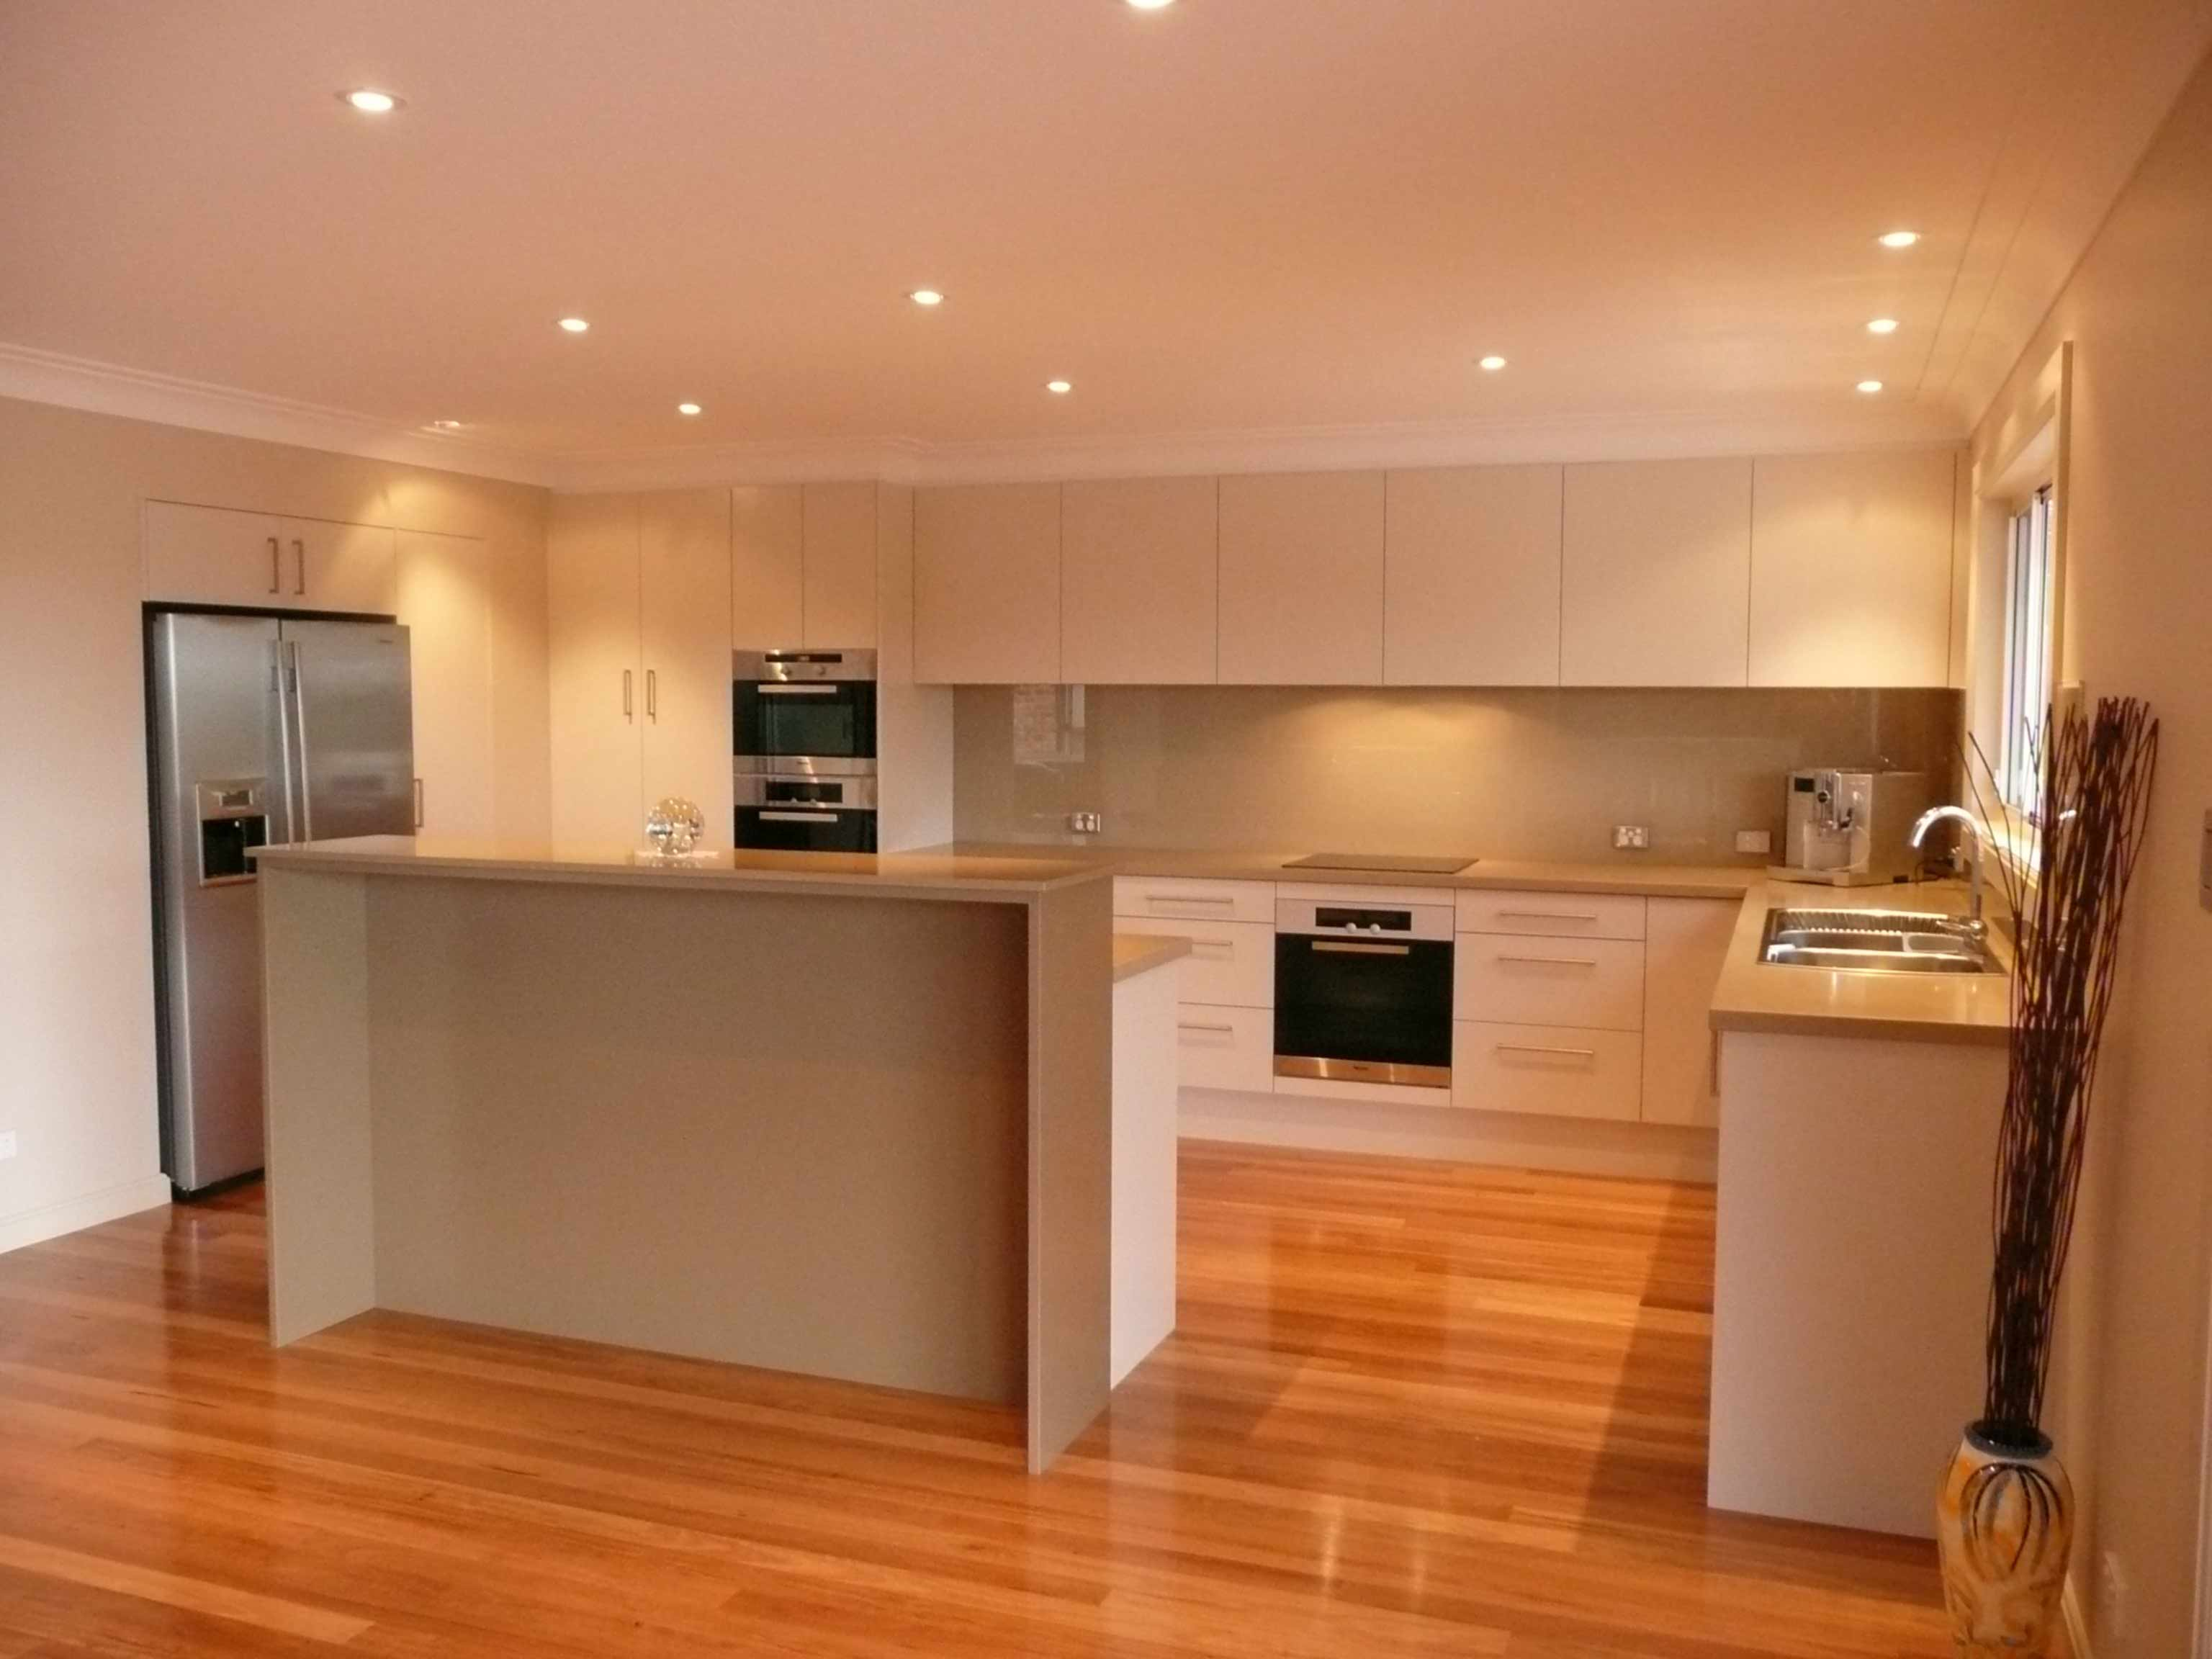 Renovated Kitchens Get Innovative With Renovated Kitchens Project